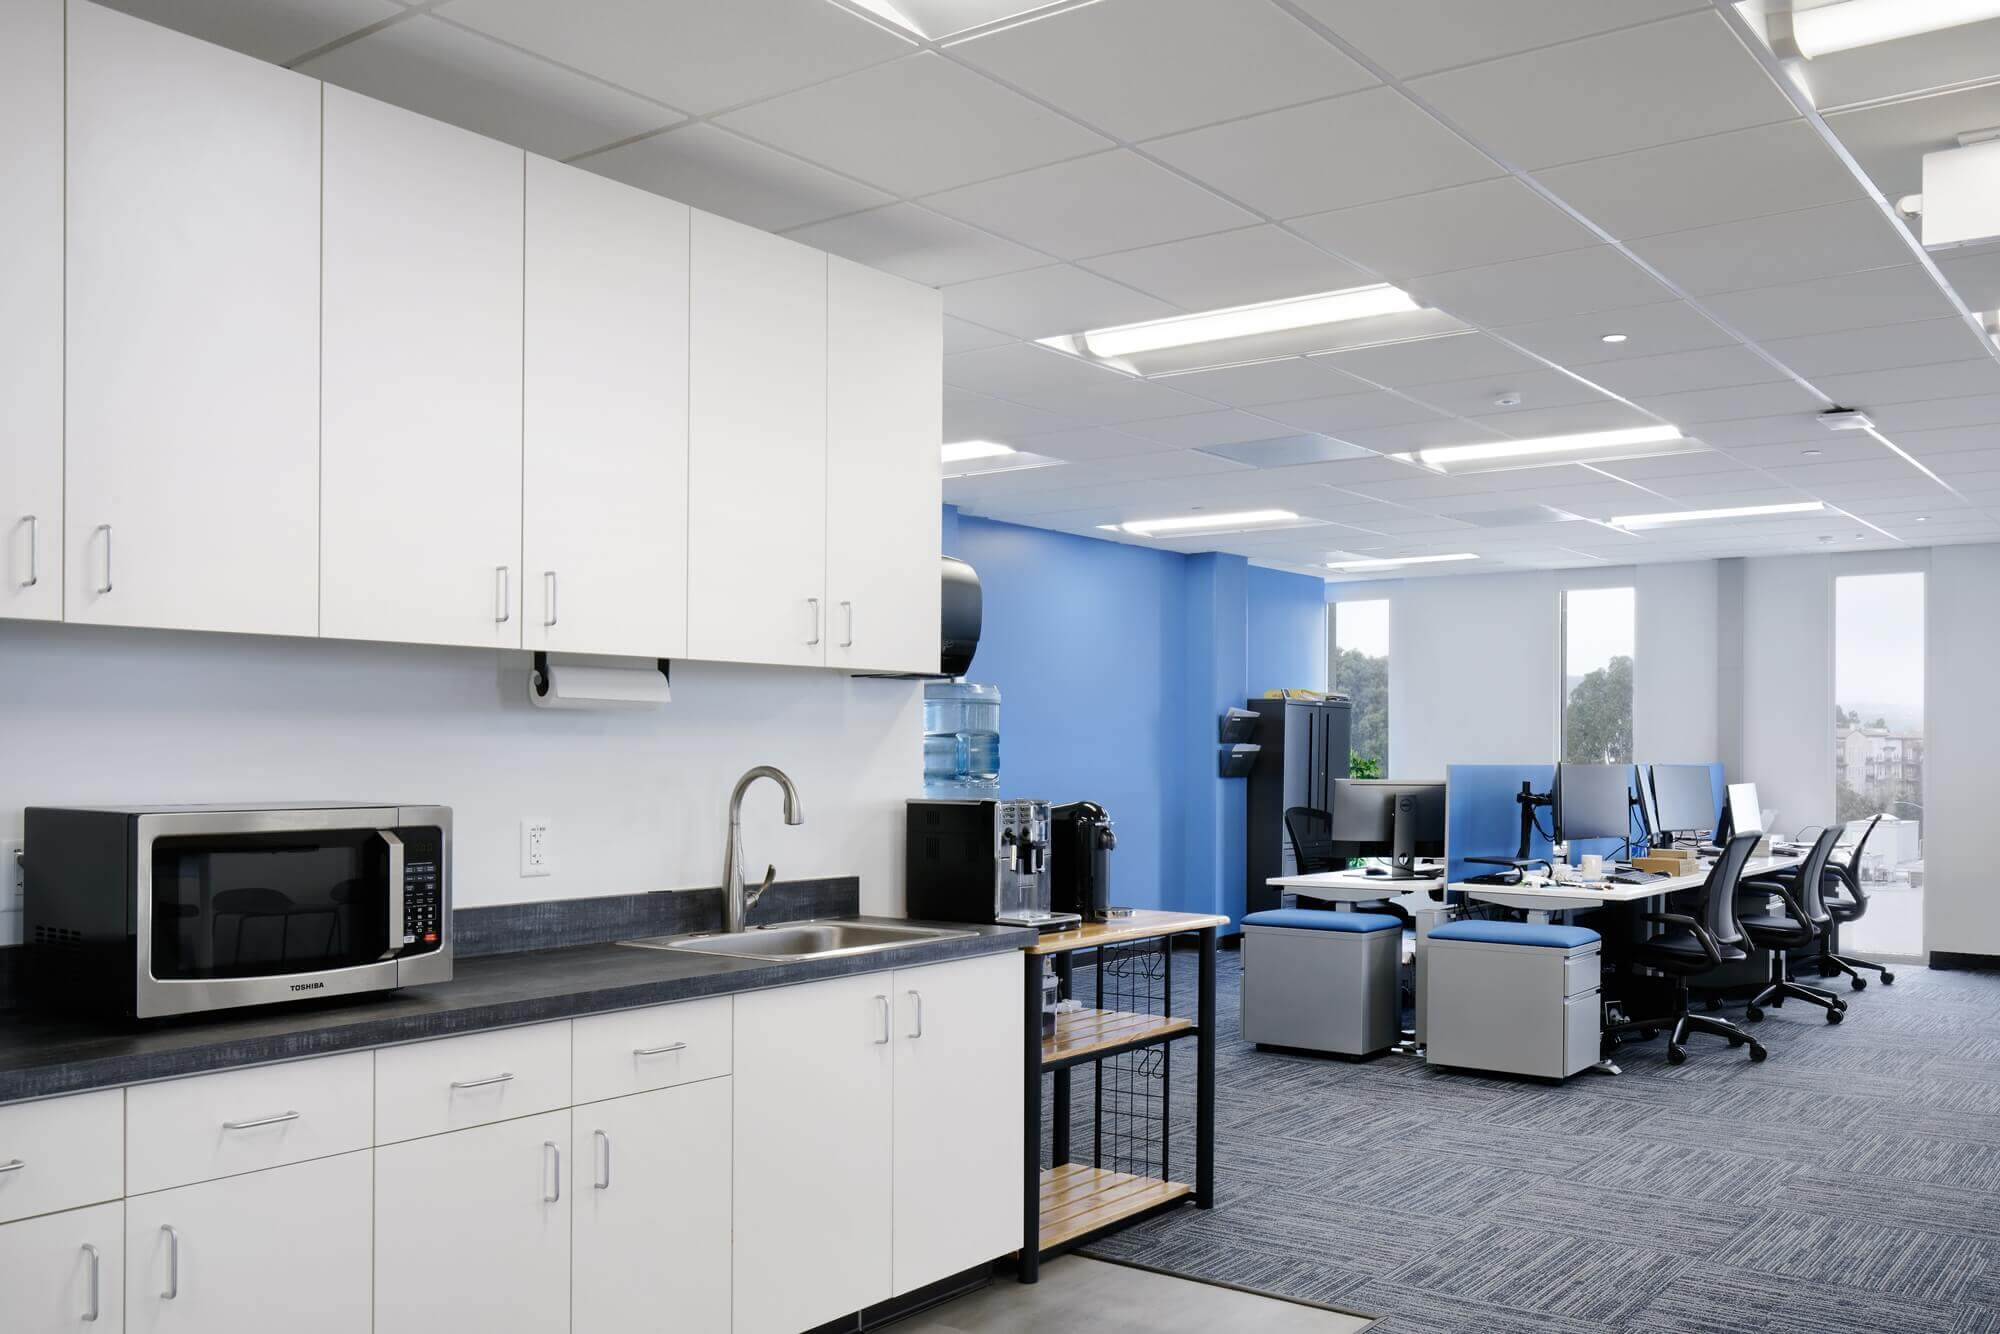 Pantry area with modular kitchen in open space office